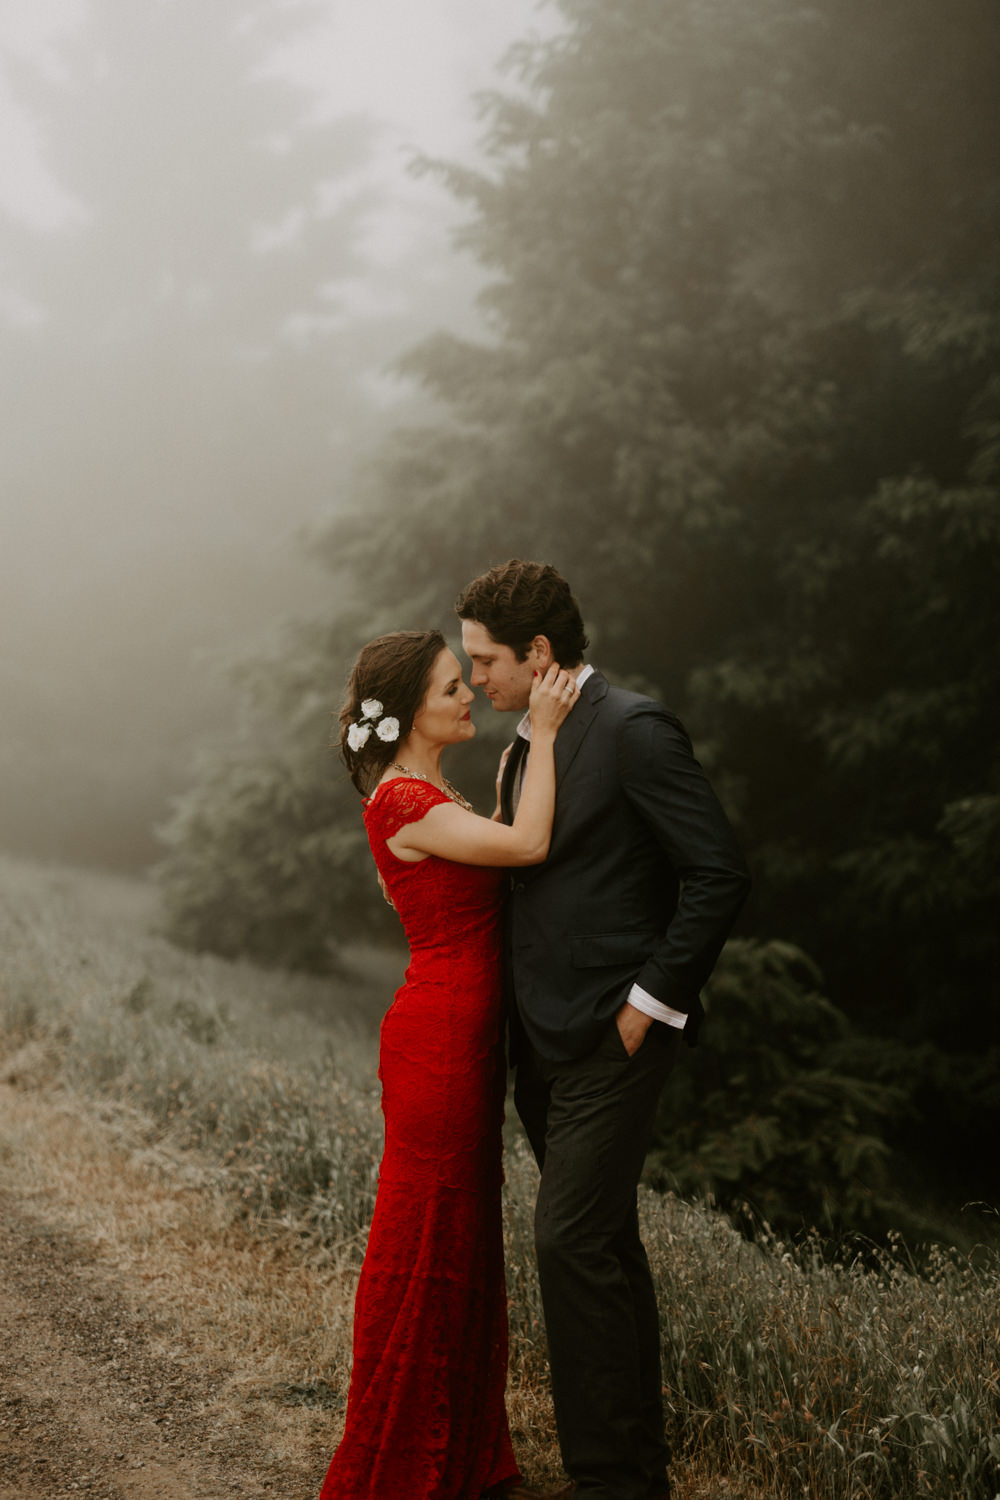 couple-intimate-engagement-session-mt-tam-21.jpg